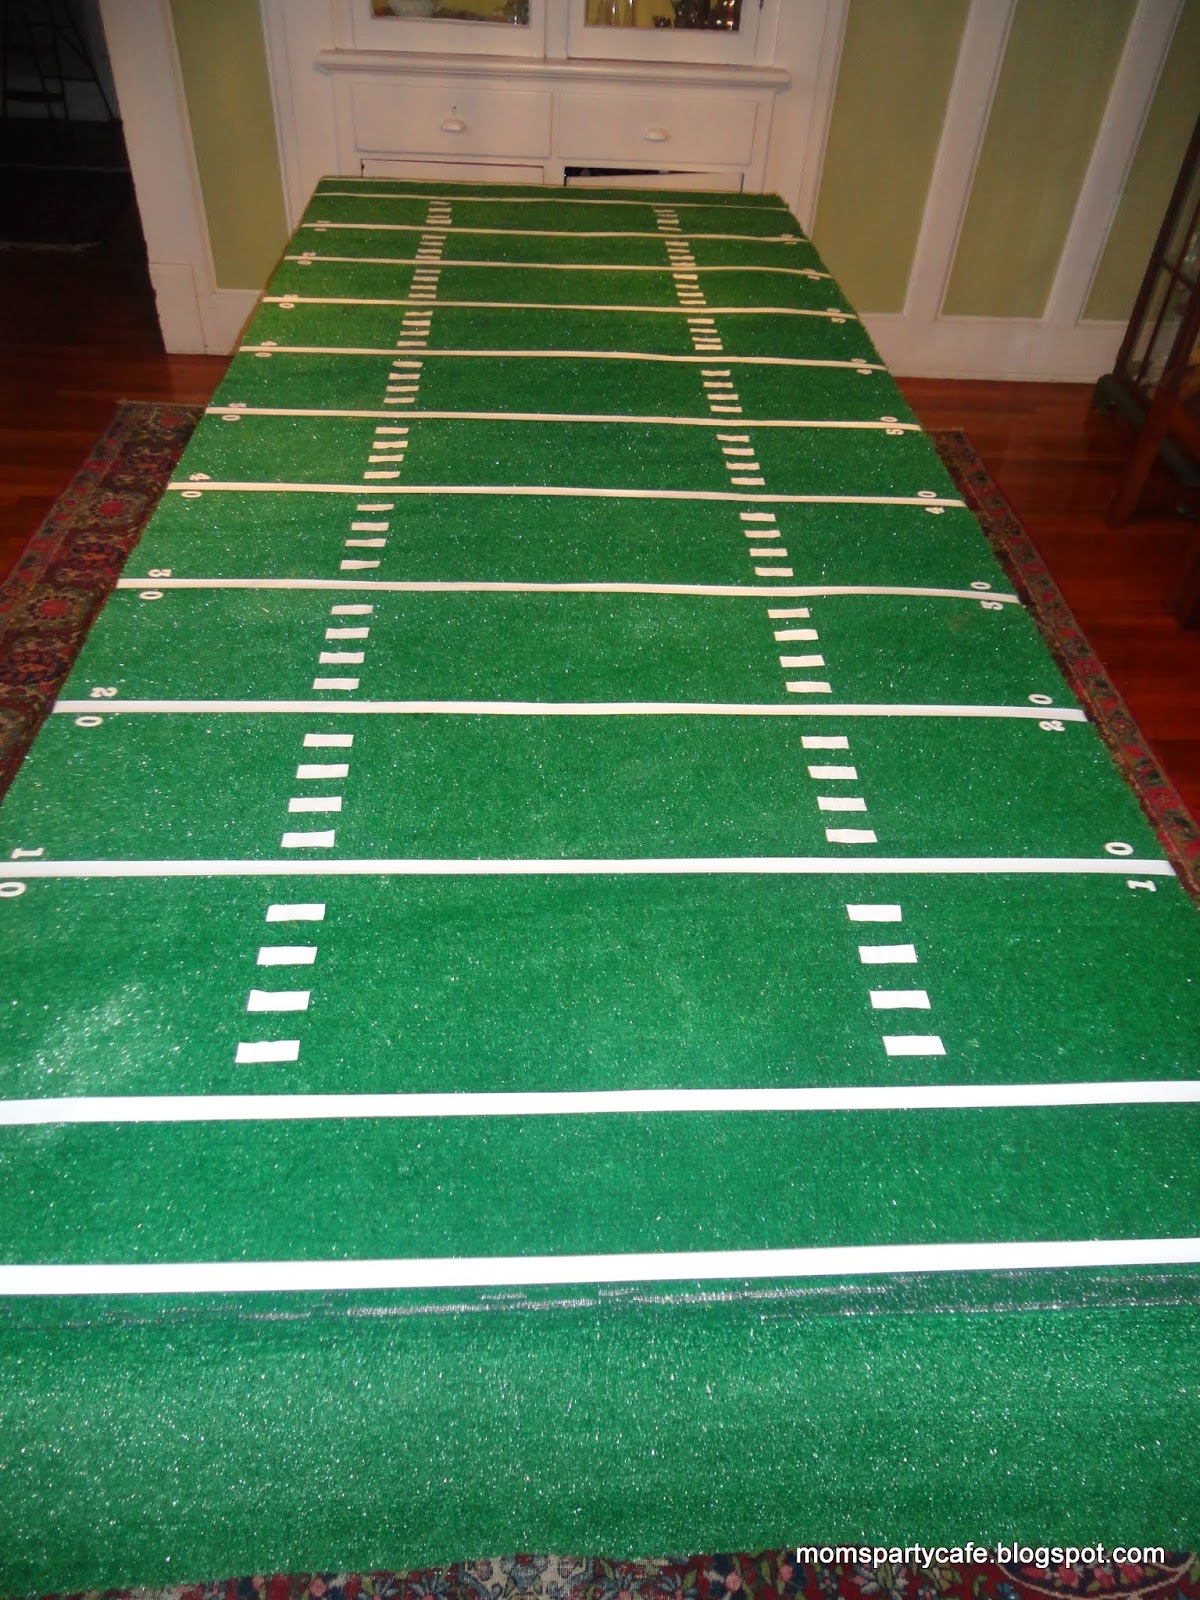 Moms Party Café Football Field Table Cover